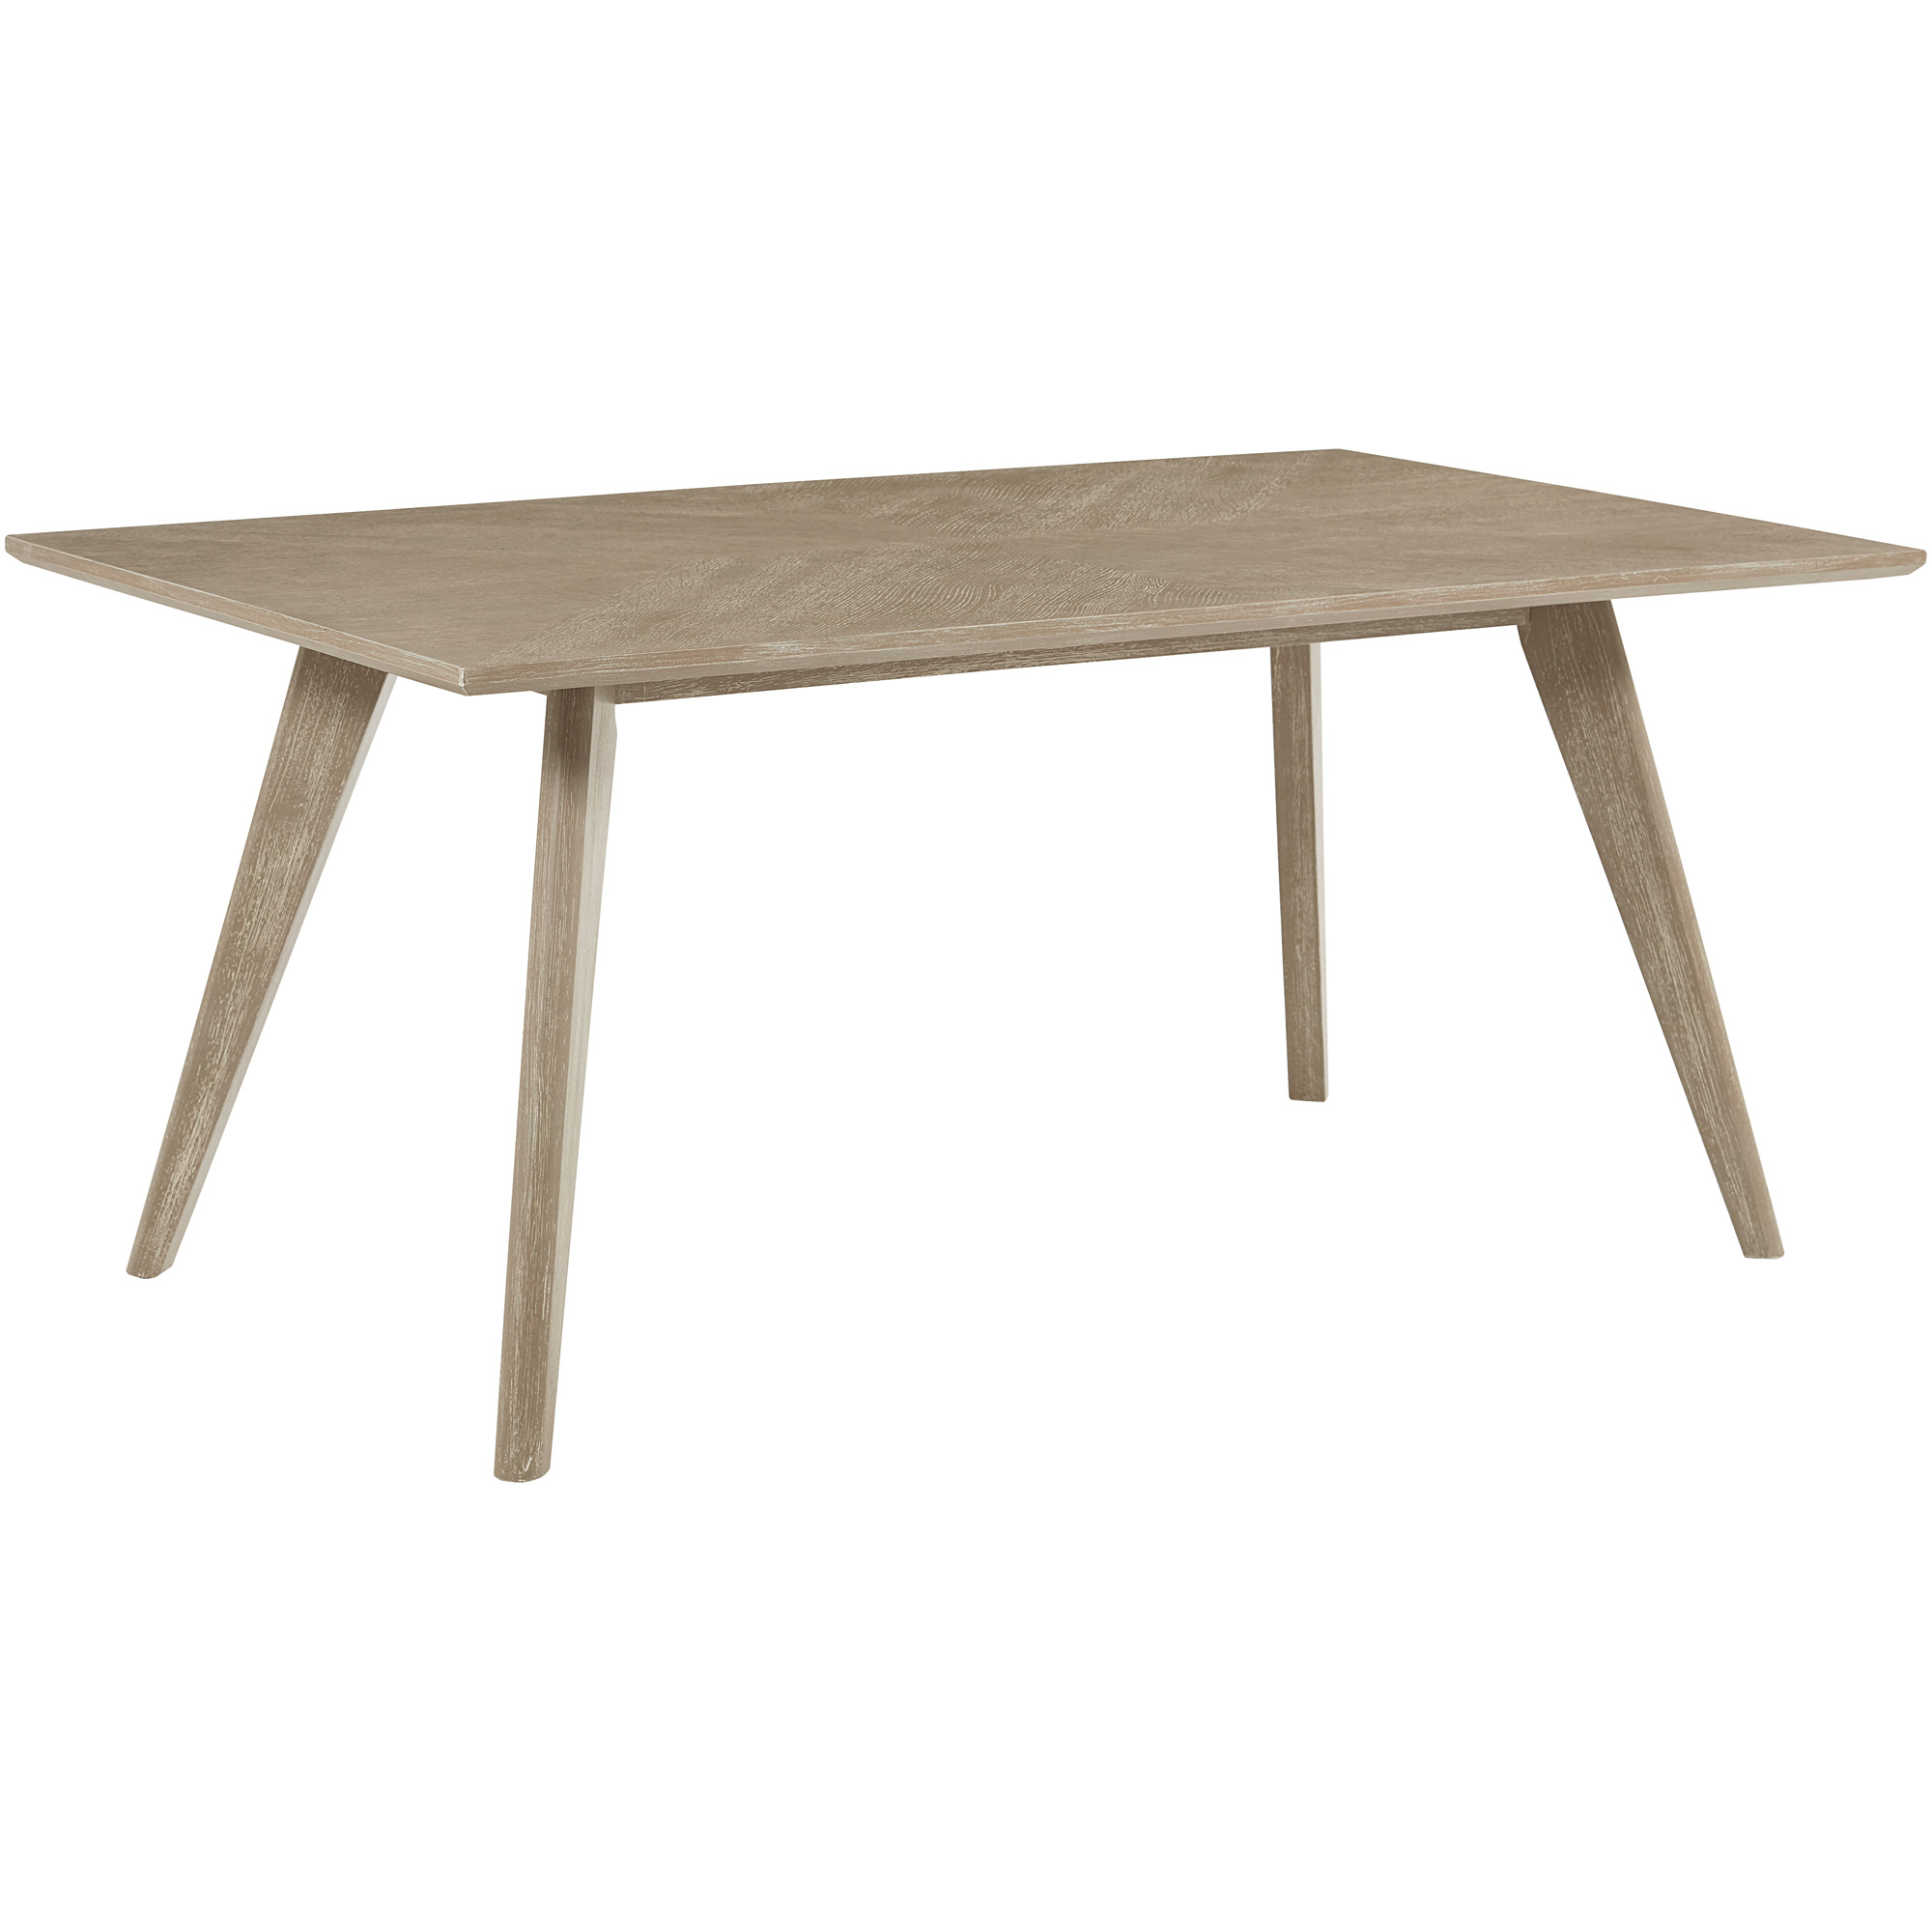 Progressive | Beck Weathered Taupe Dining Table